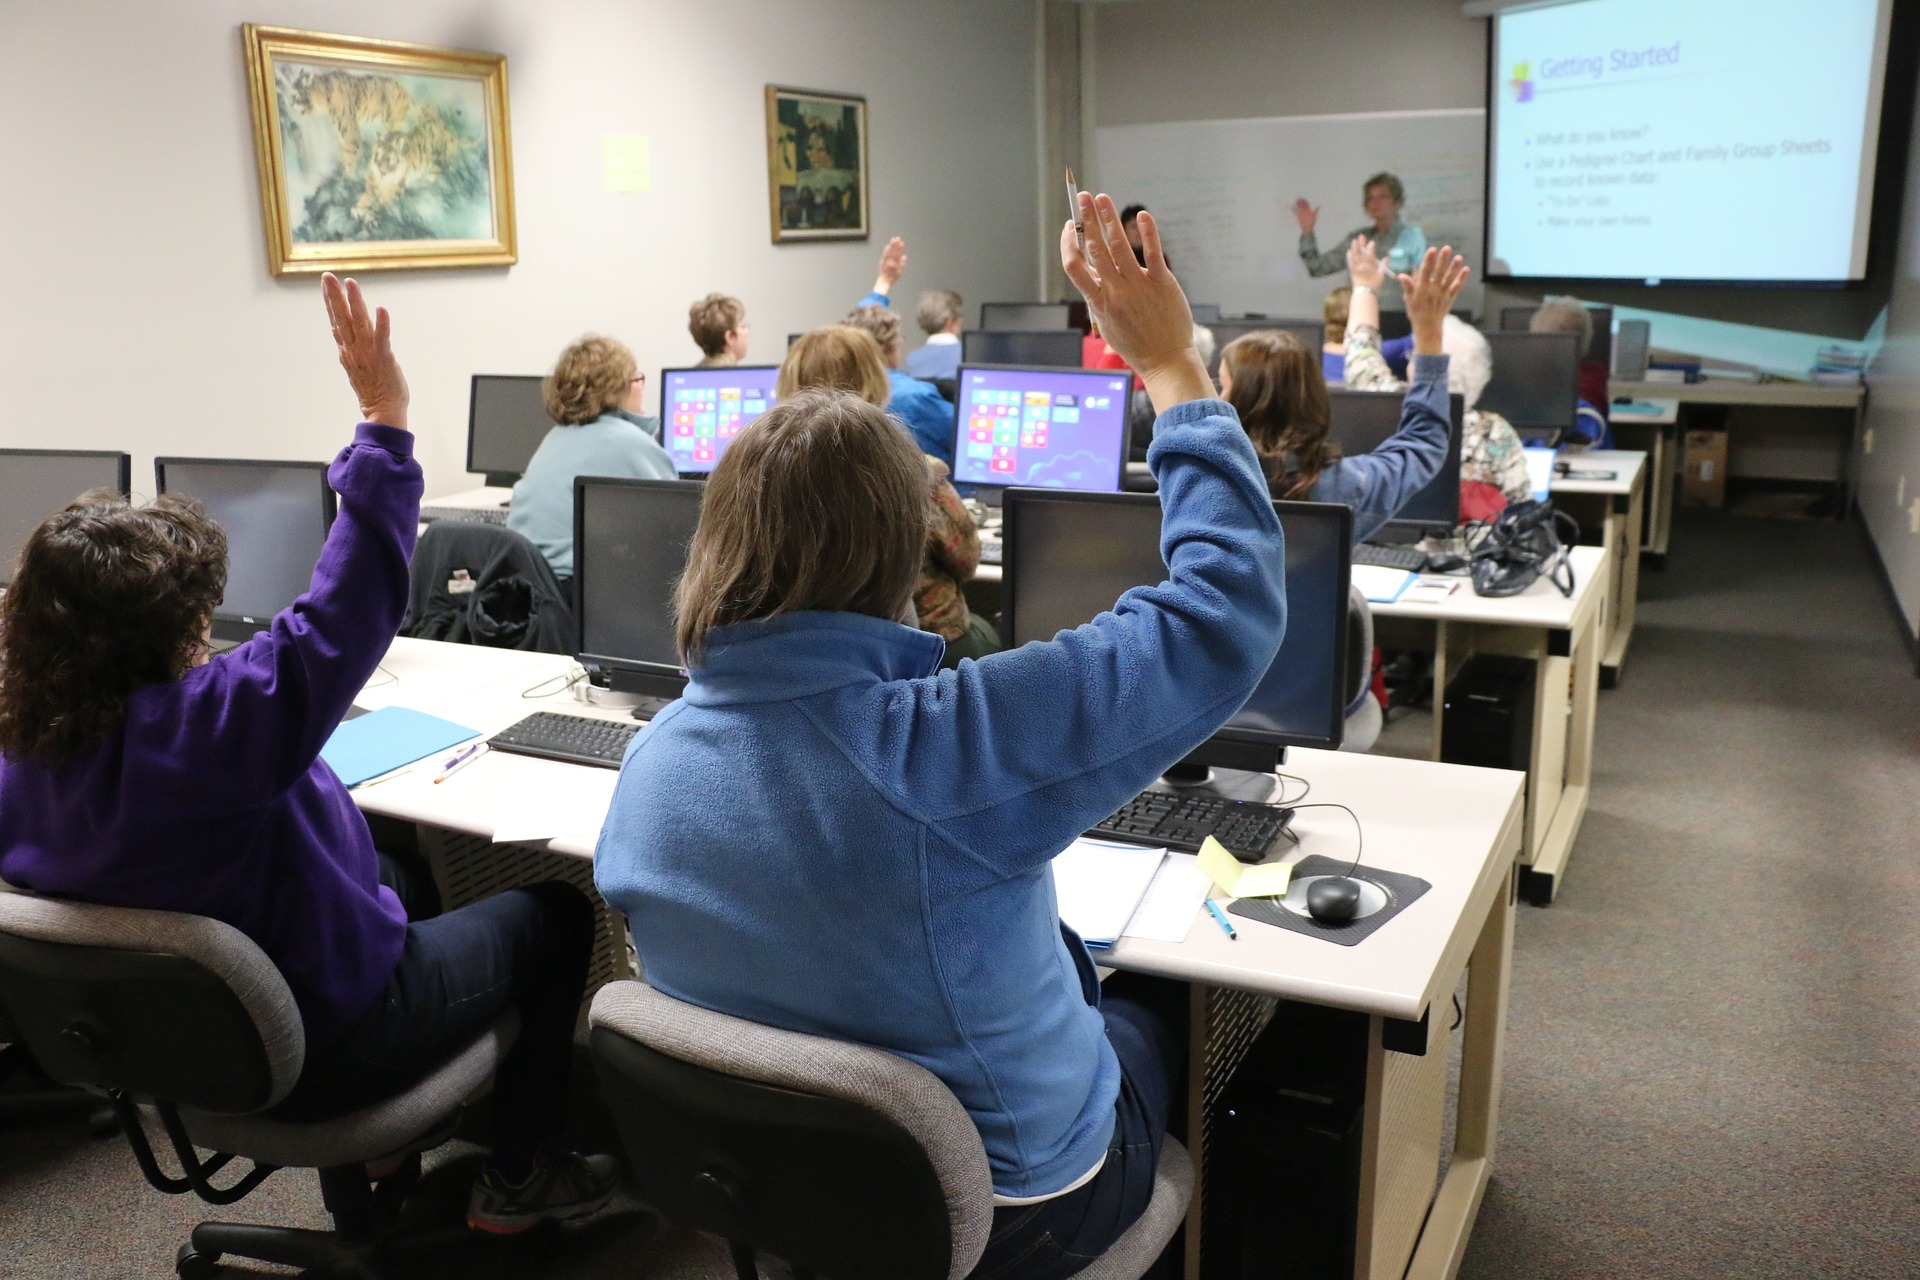 Advantages And Disadvantages Of Using Technology In Classroom